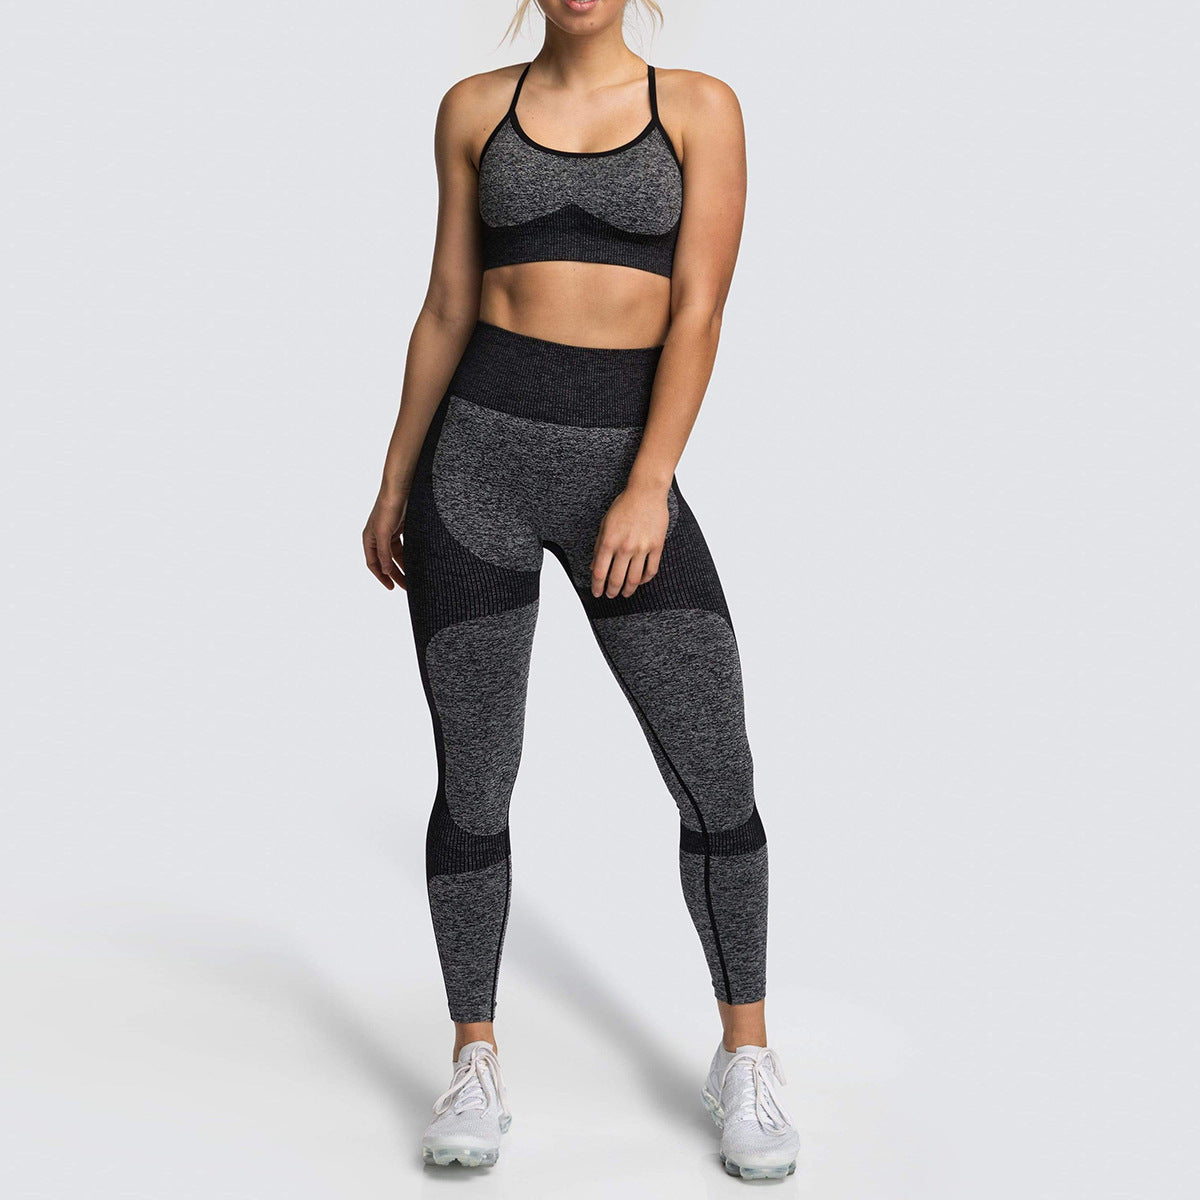 2020 Women Seamless Yoga Vest Suit High Waisted Sport Leggings Activewear Running Wear Training Suit YS-013